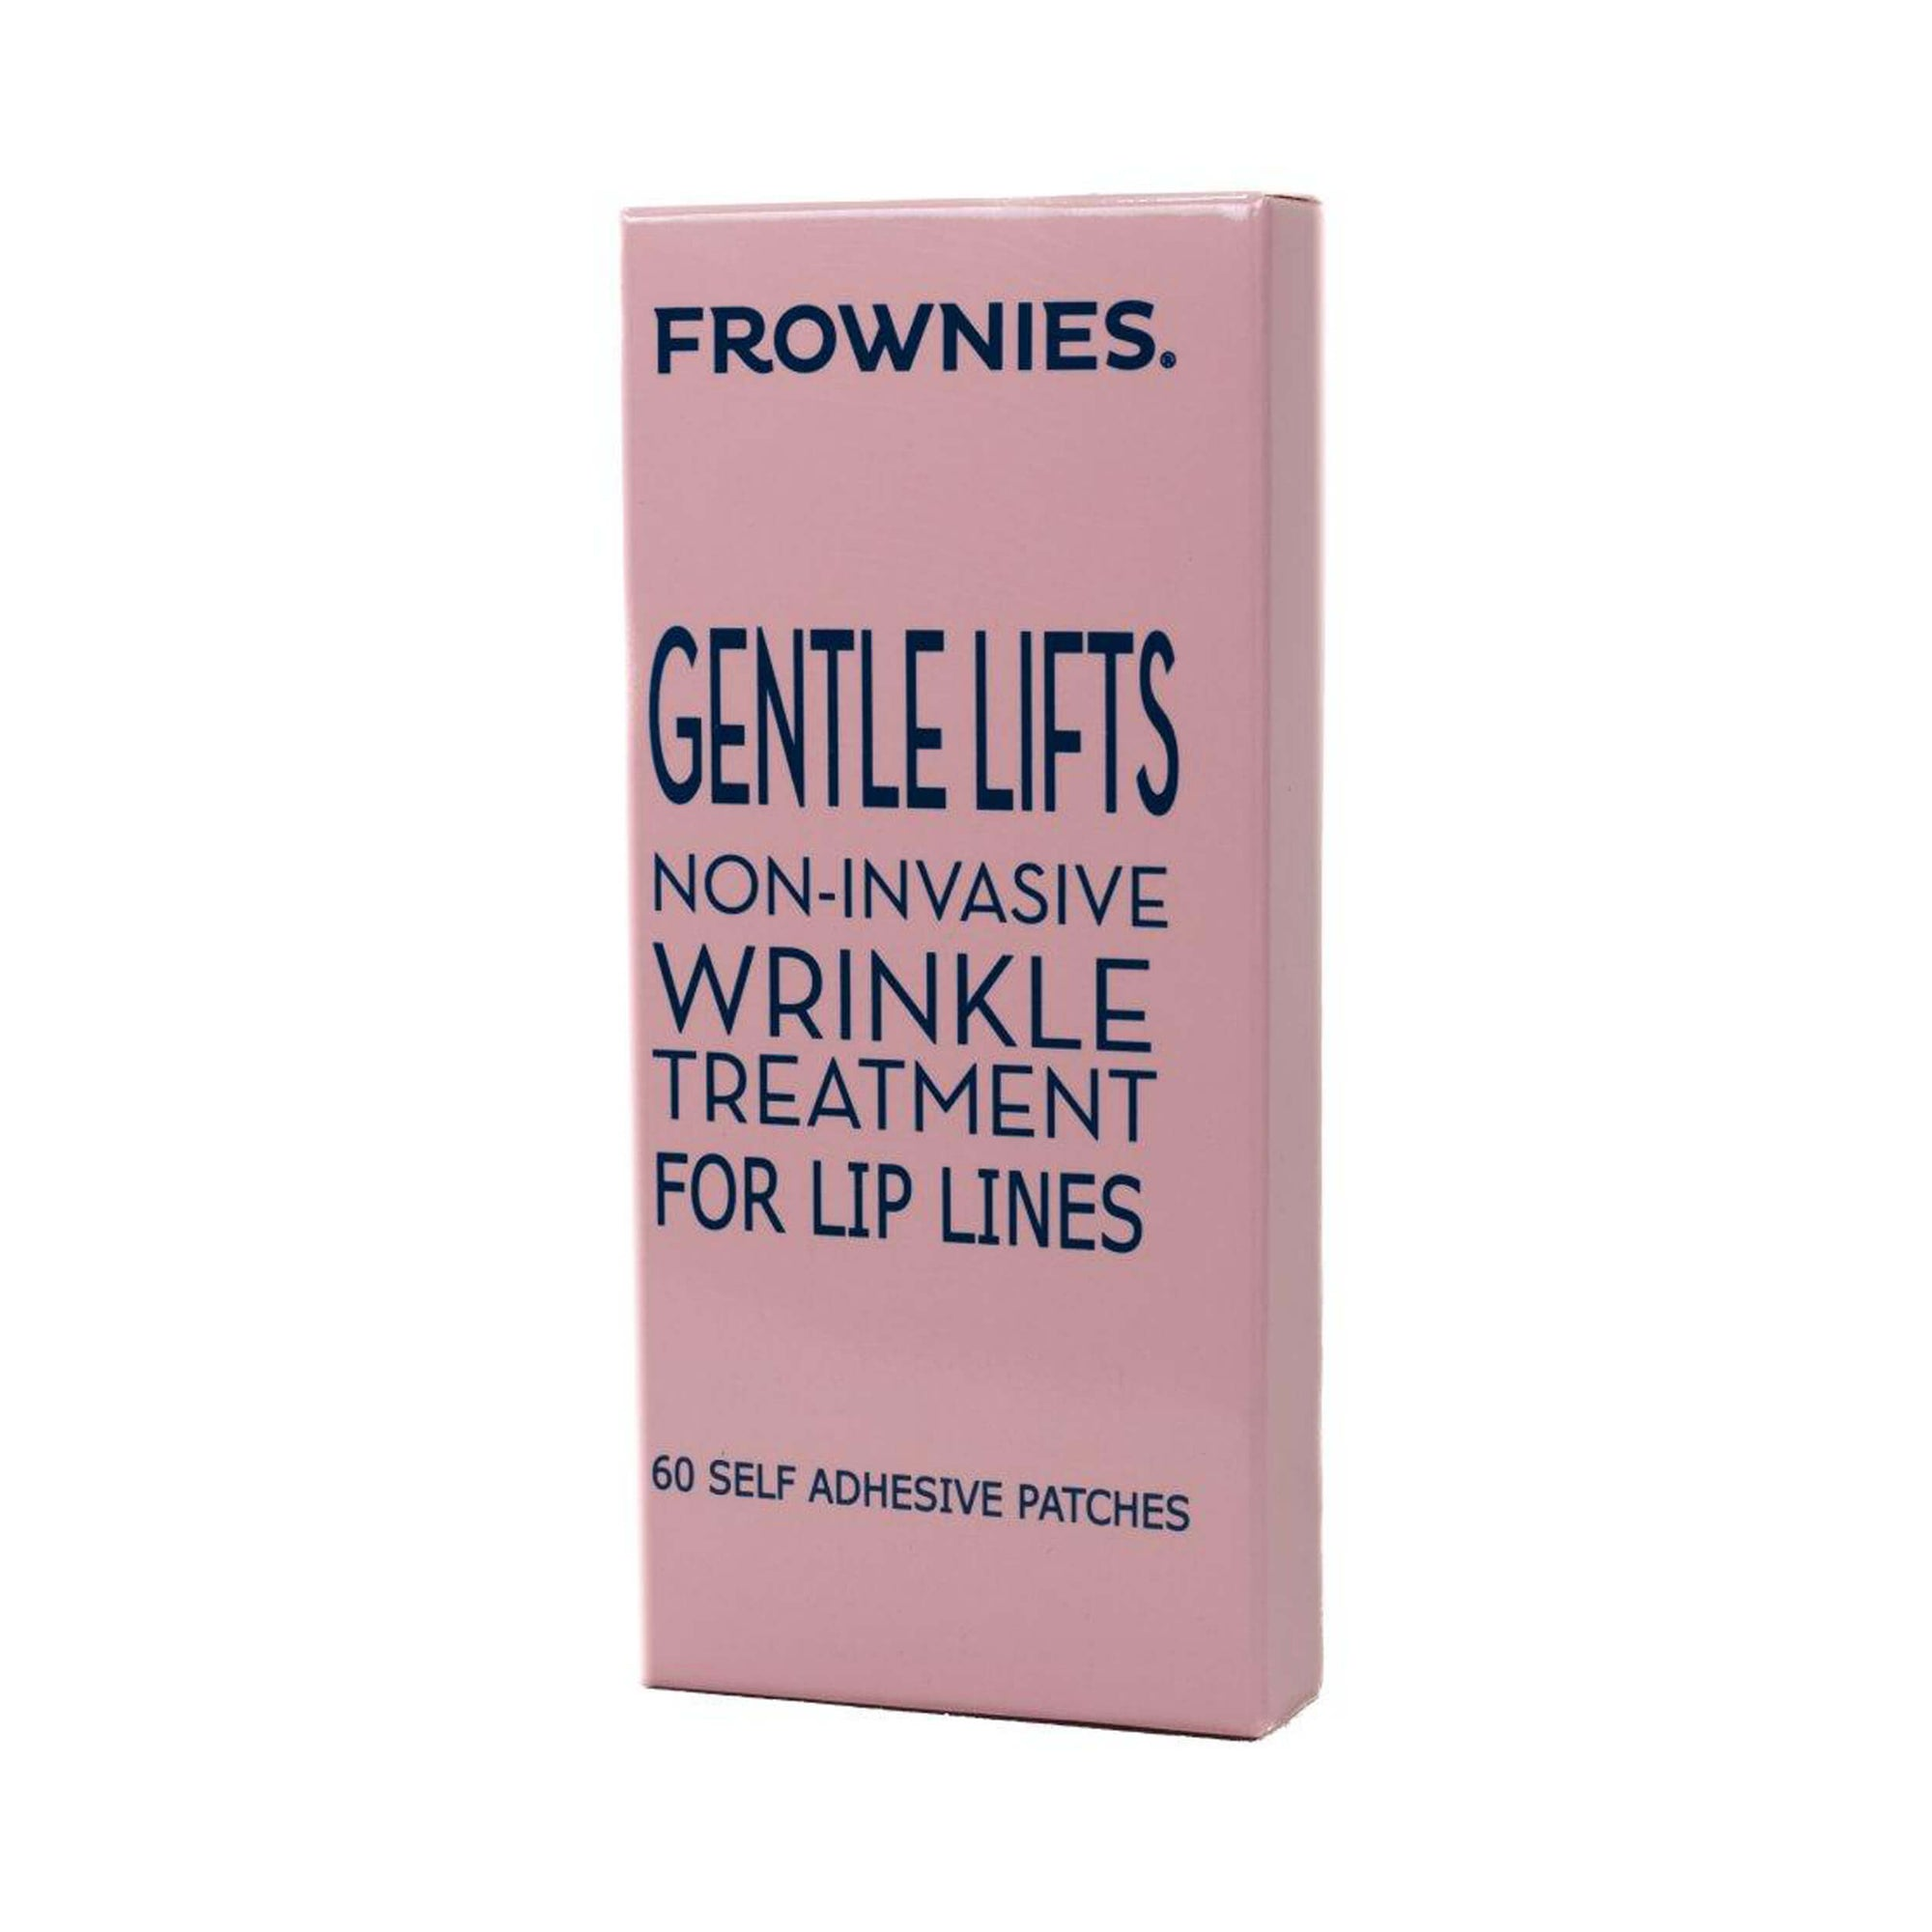 Frownies Gentle Lifts GL